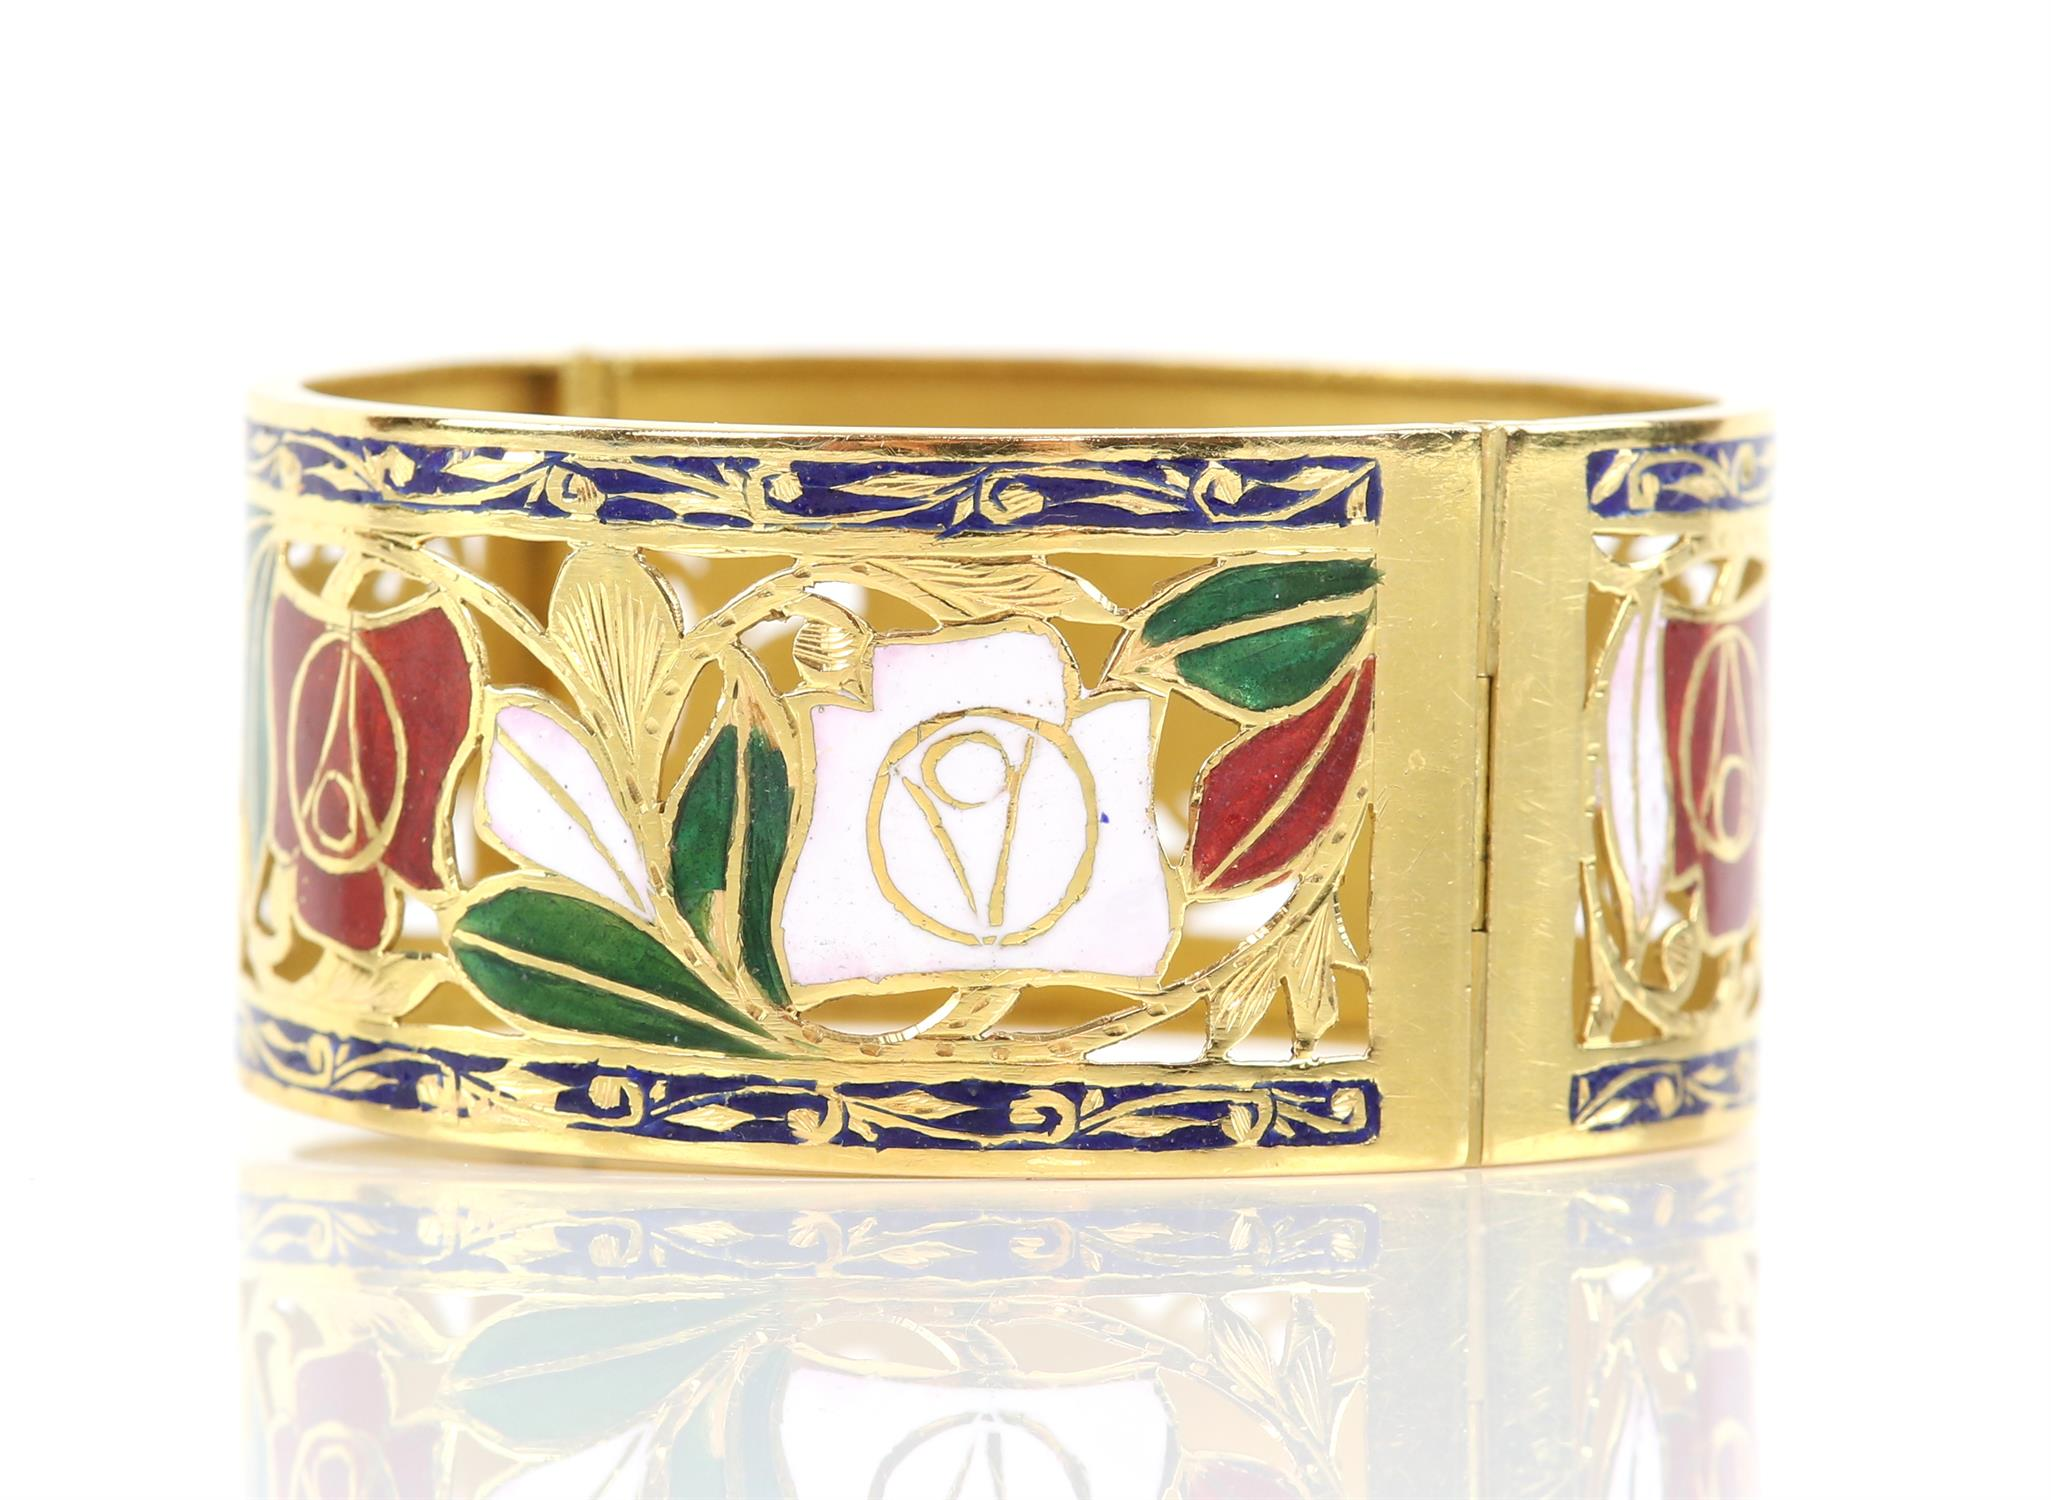 Enamel red and white rose gold pierced bangle, with enamel leaves and scrolled blue enamel borders, - Image 4 of 7